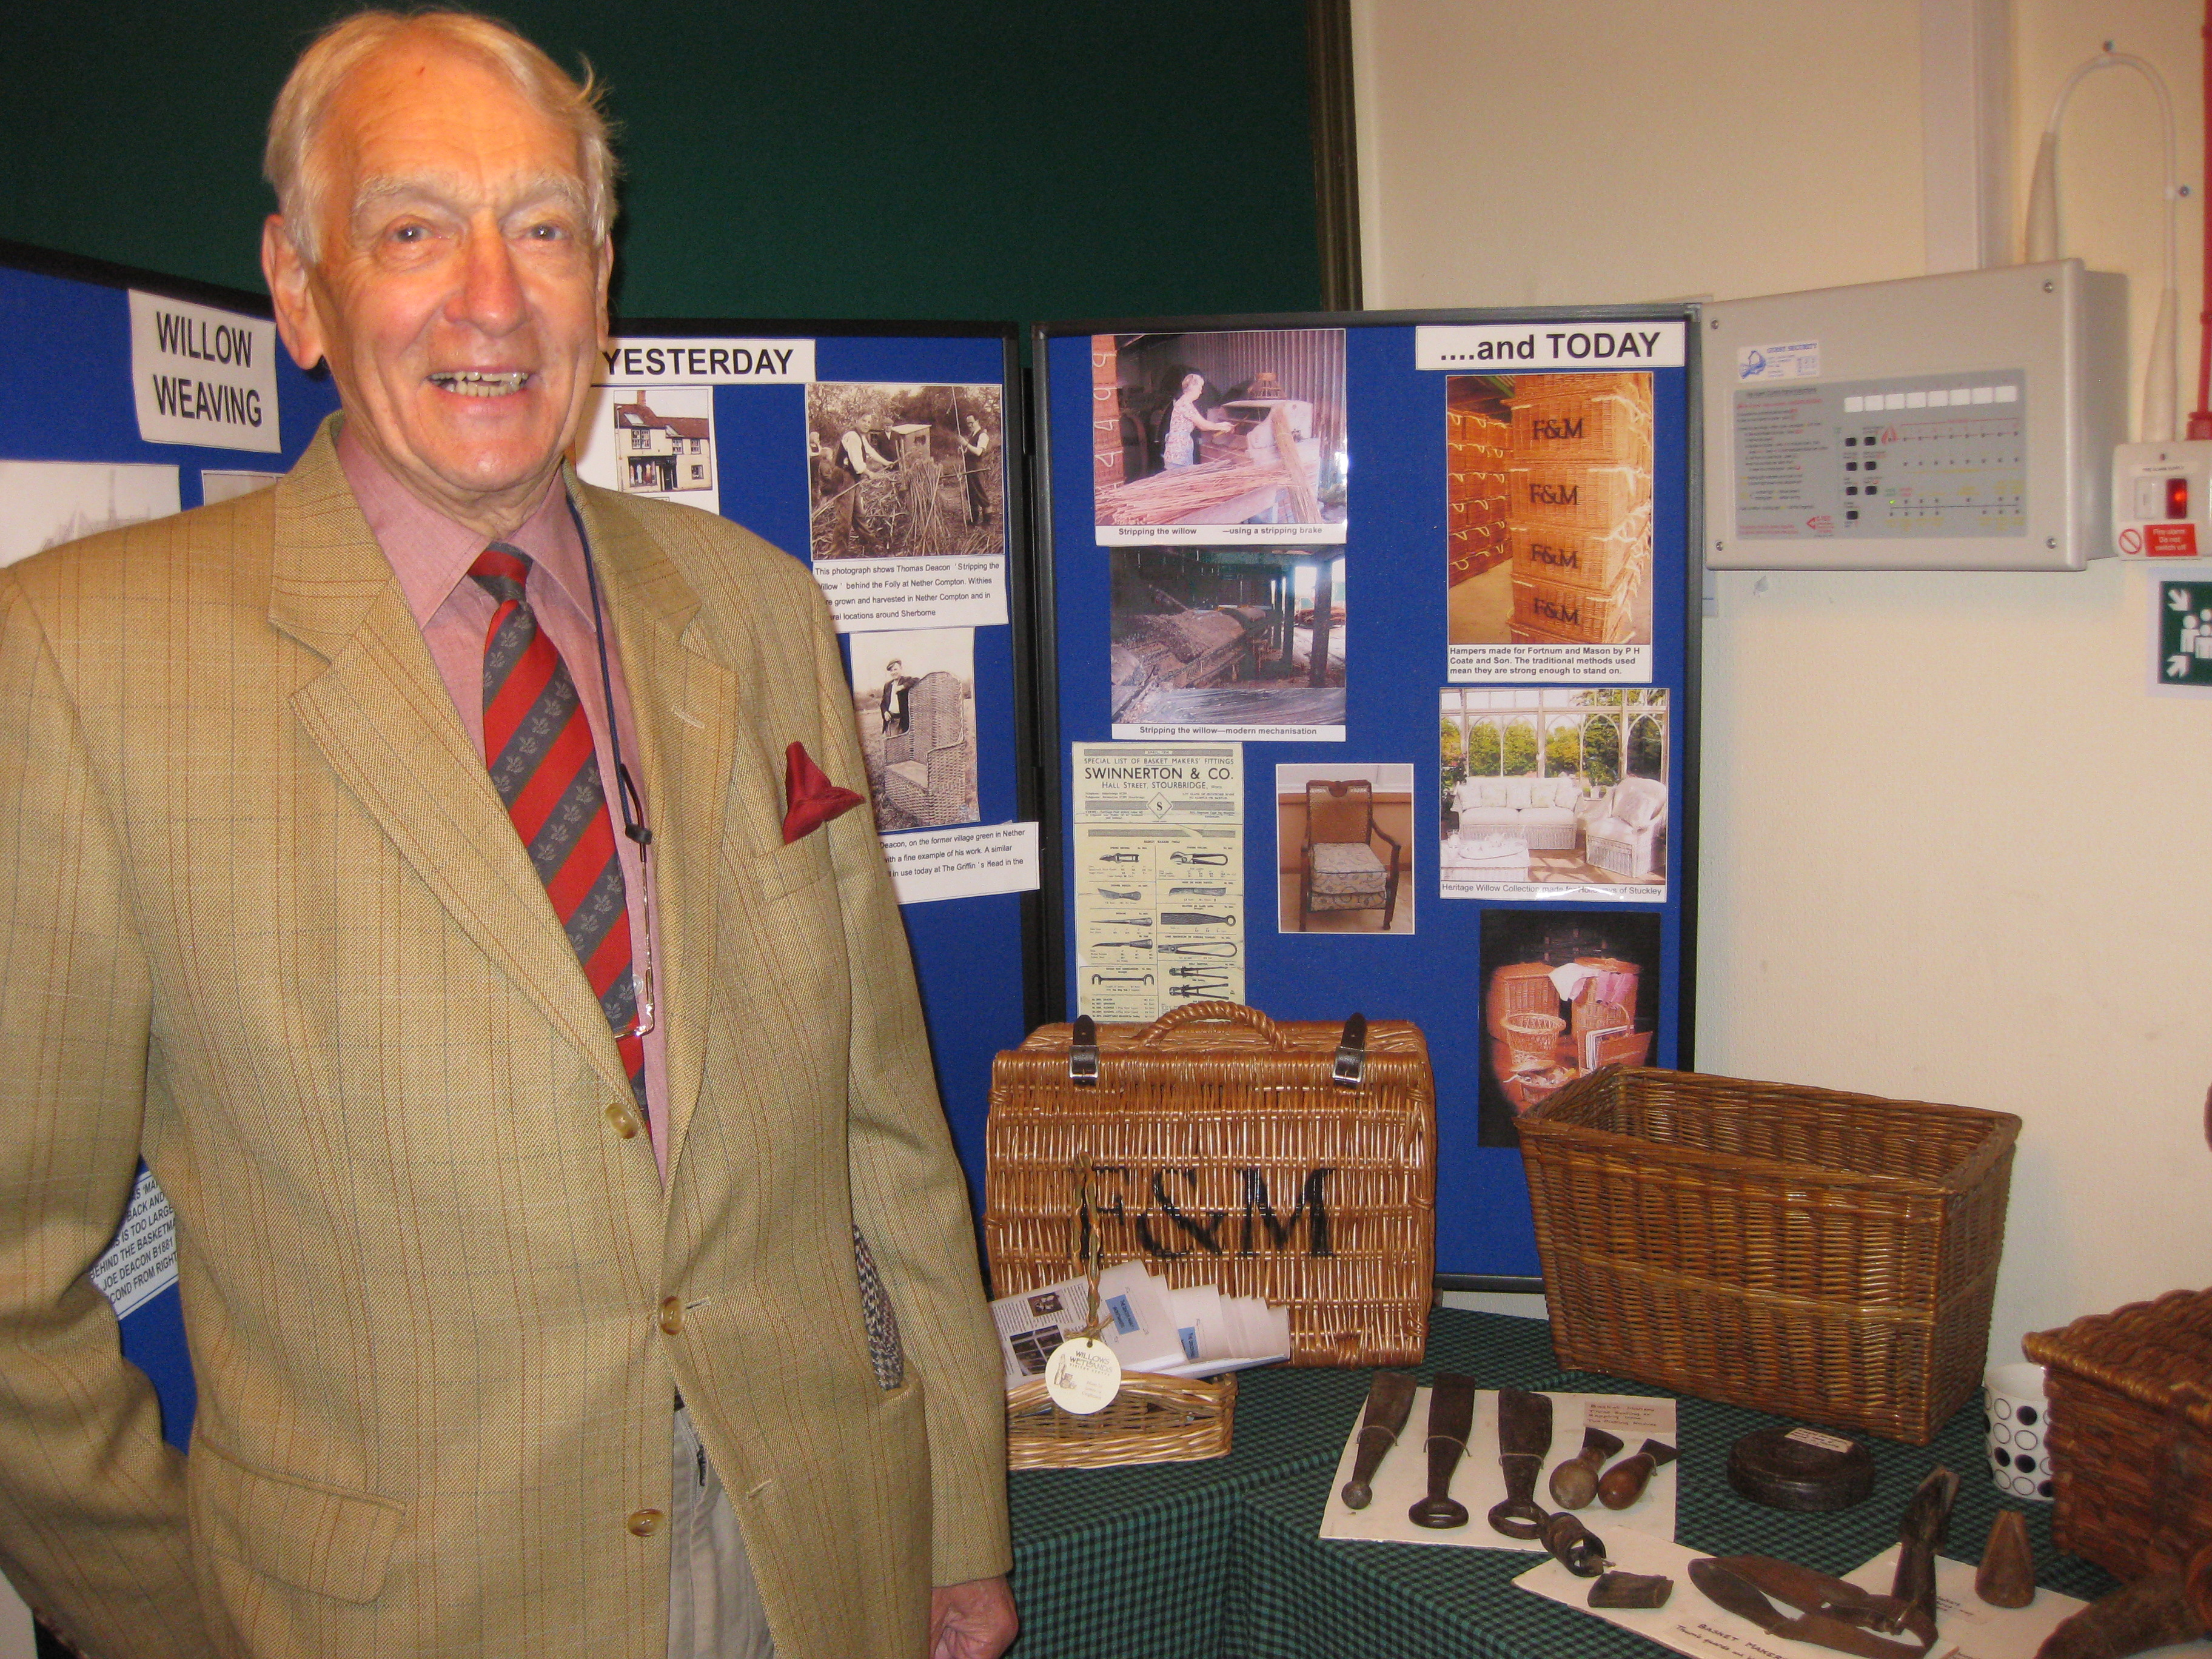 Col Iain Swinnerton standing beside the old basketmaking tools made by his family firm.